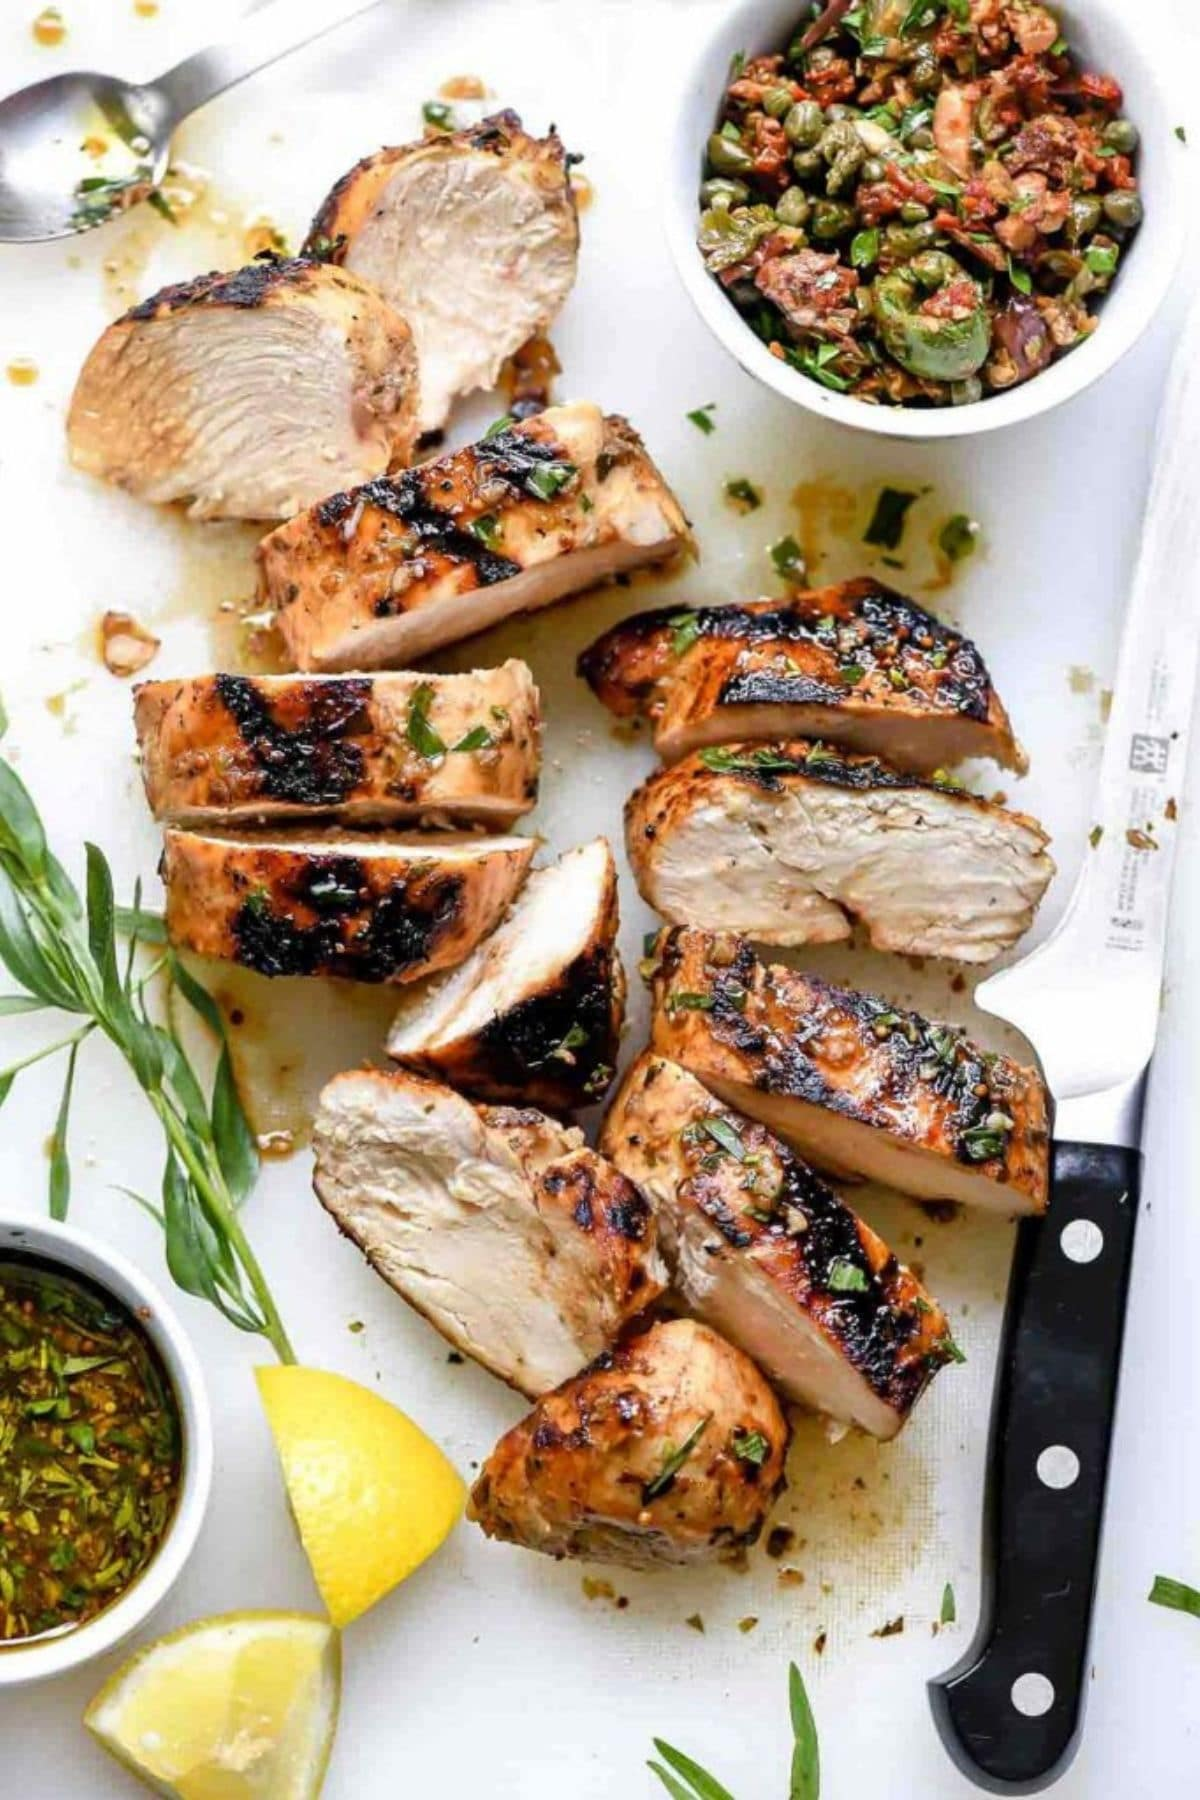 Sliced chicken breasts on white table next to olive tapanede